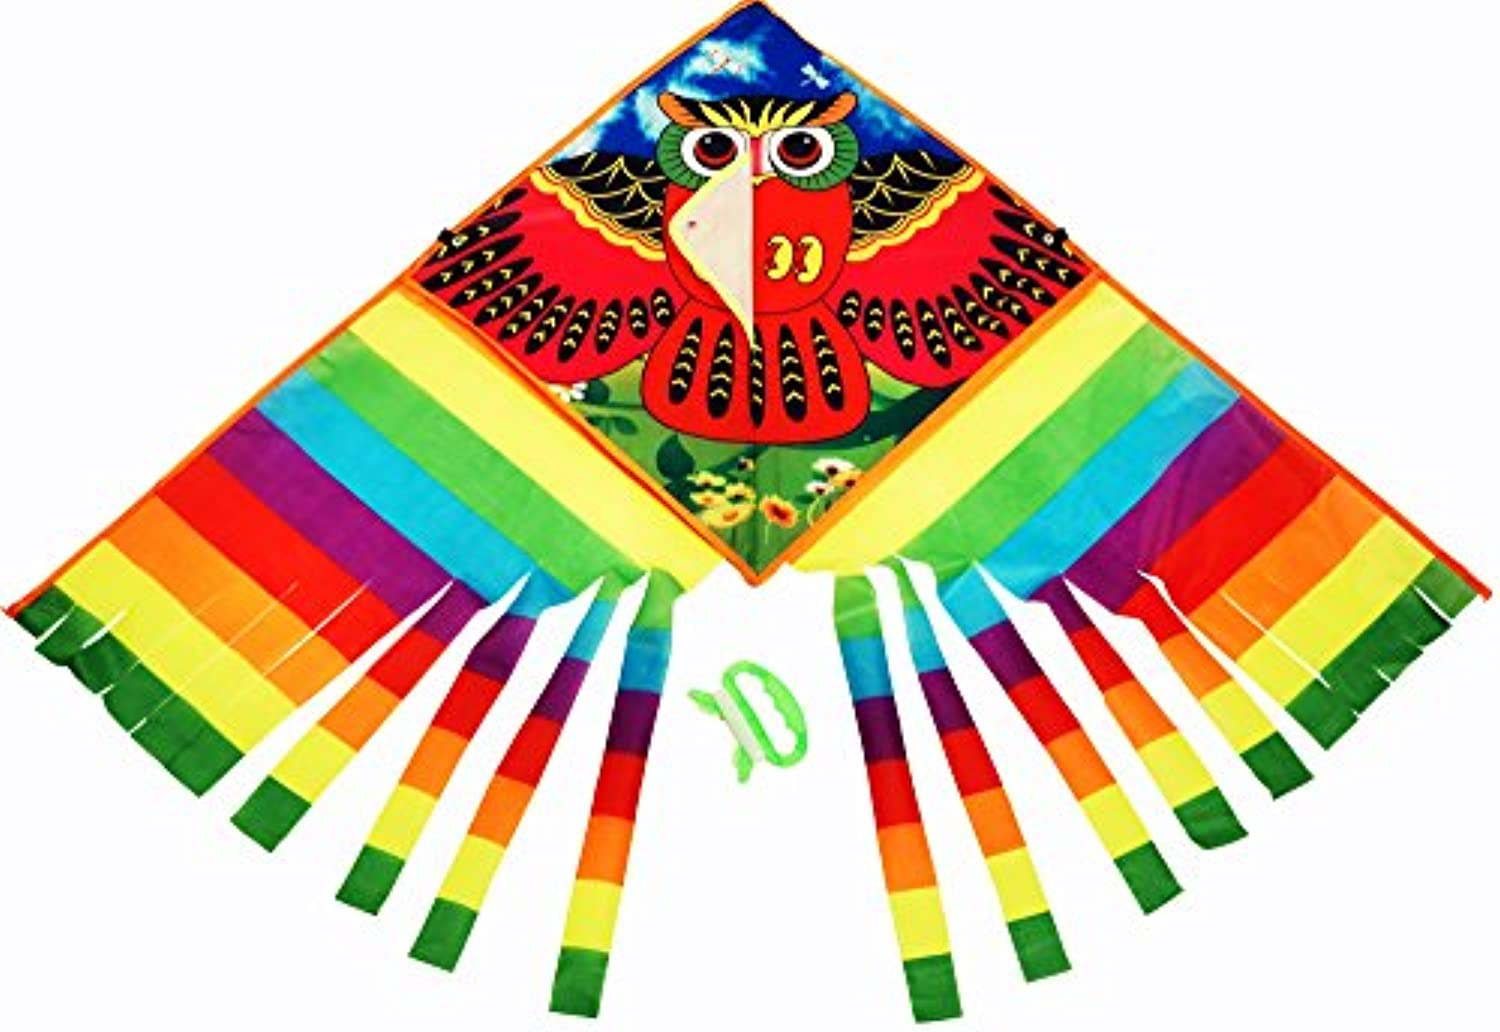 (OWL KITE) - SkyStand PREMIUM OWL FLYING KITE - One of the Best Delta Kites for Kids, Kites for Adults with Multicolor Tail and what we call BUTTERFLY EFFECT